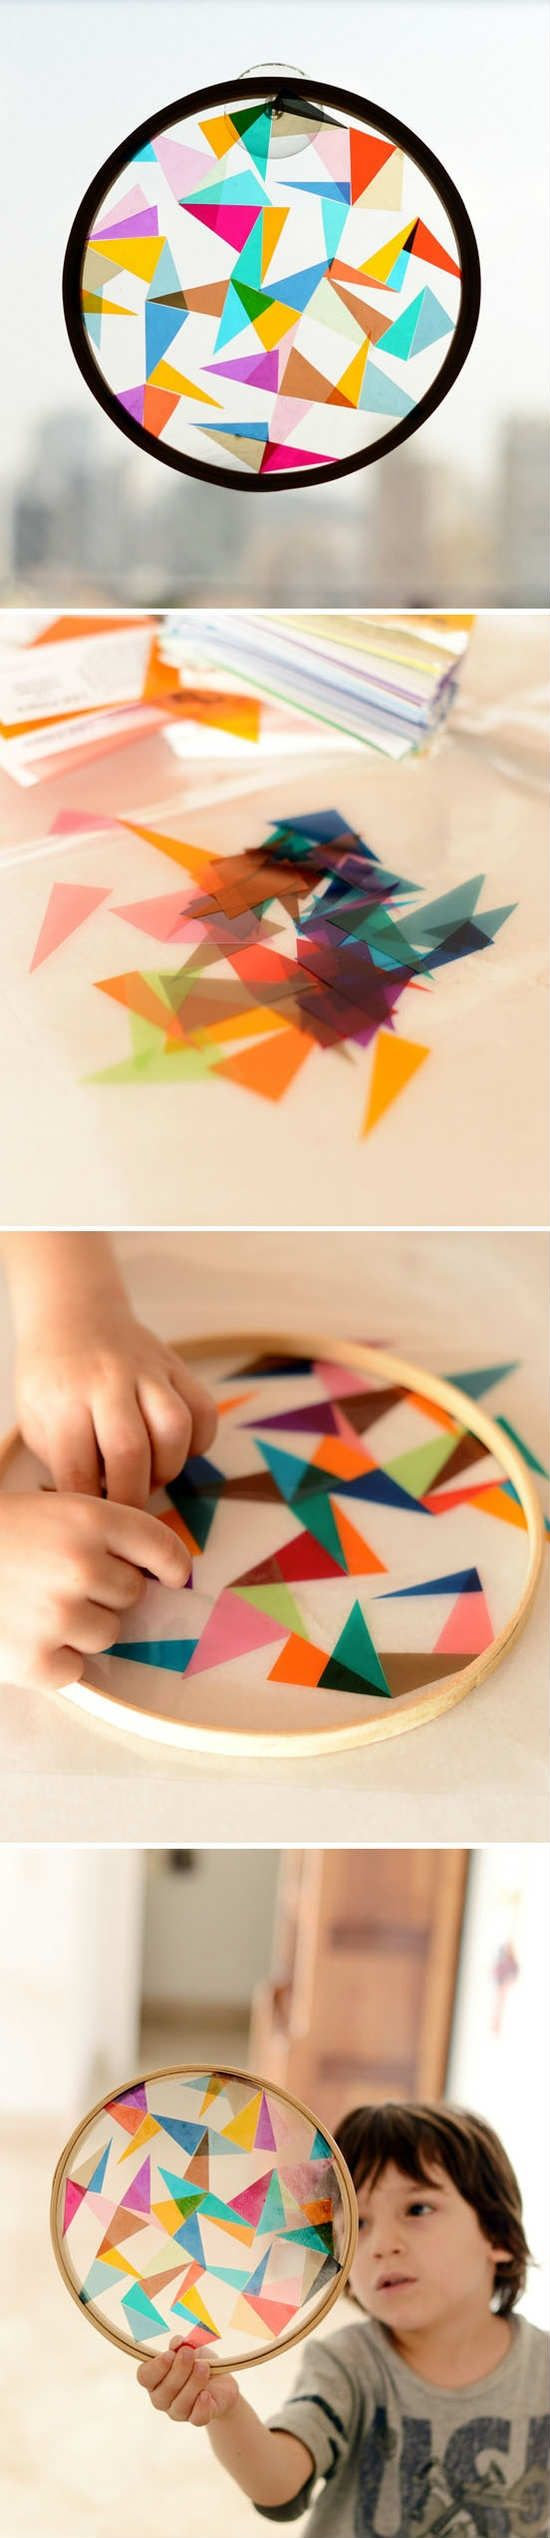 DIY Colourful geometric sun catcher | 10 Educational Kids Crafts - Tinyme Blog